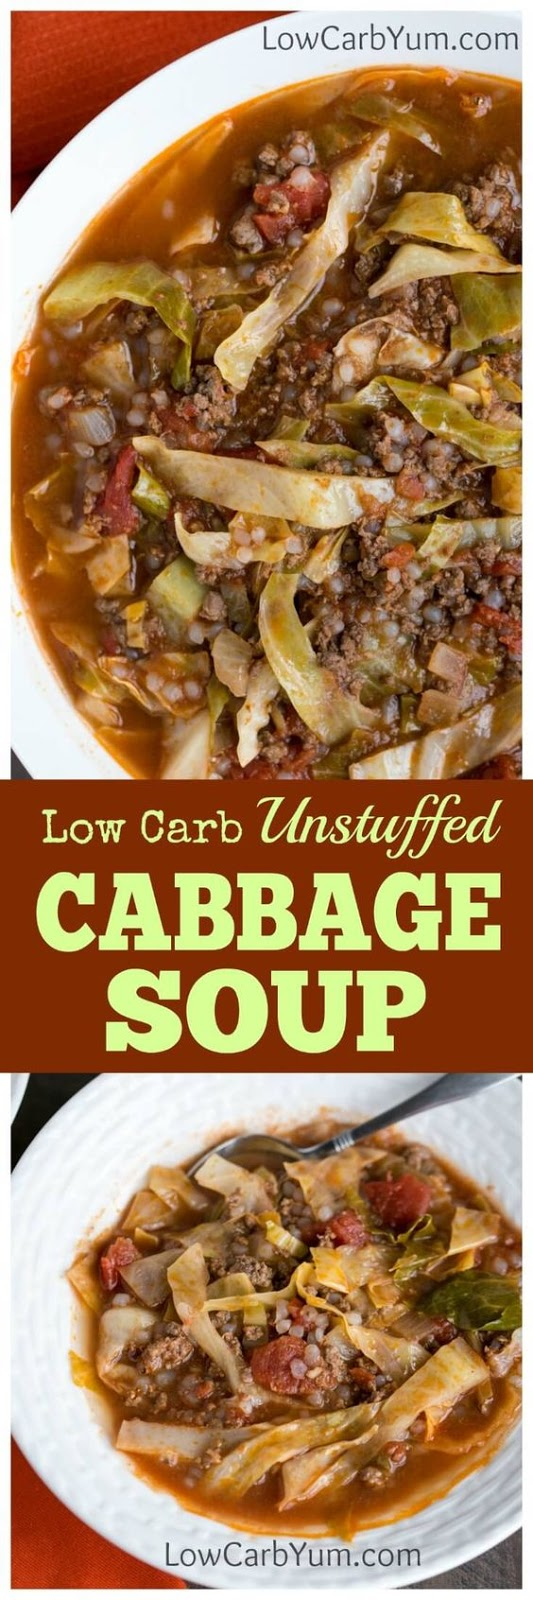 Easy Unstuffed Cabbage Soup Recipe